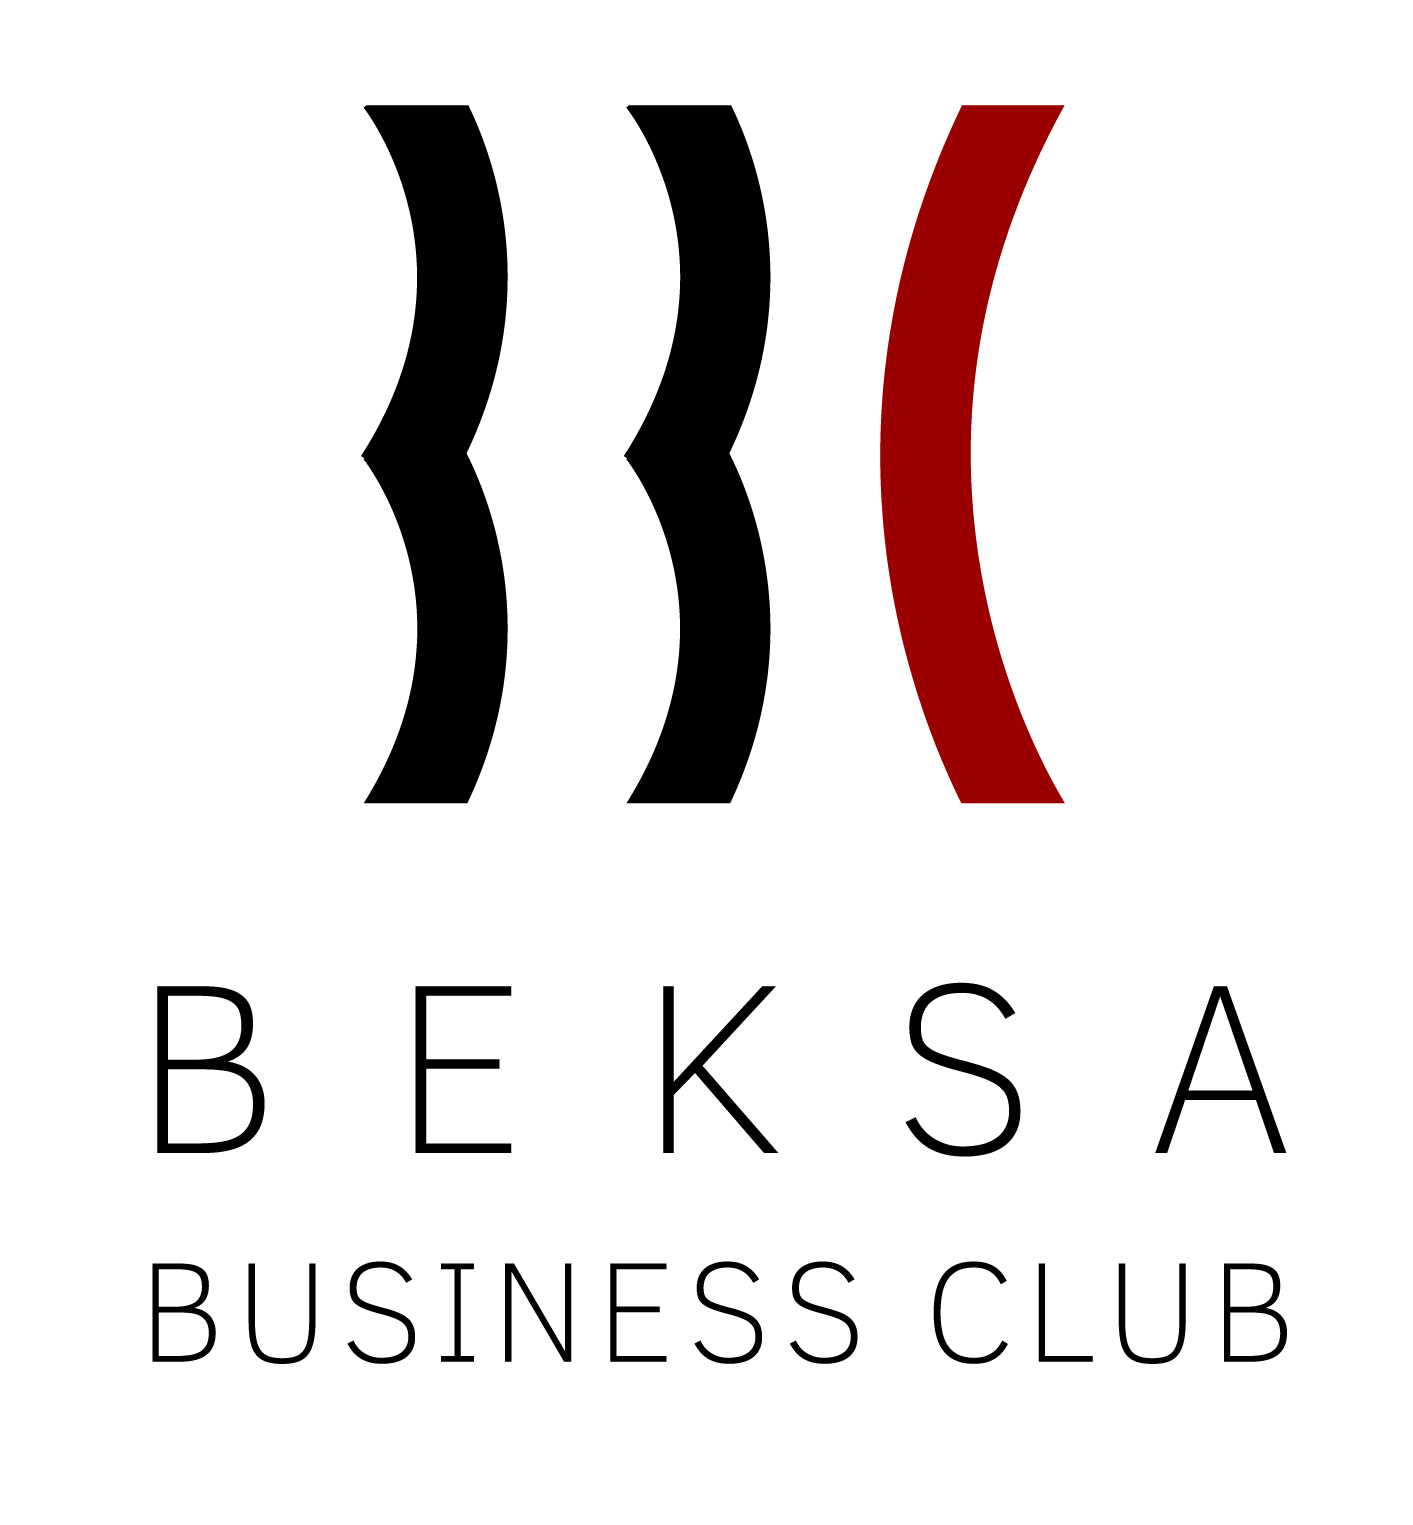 Beksa Business Club